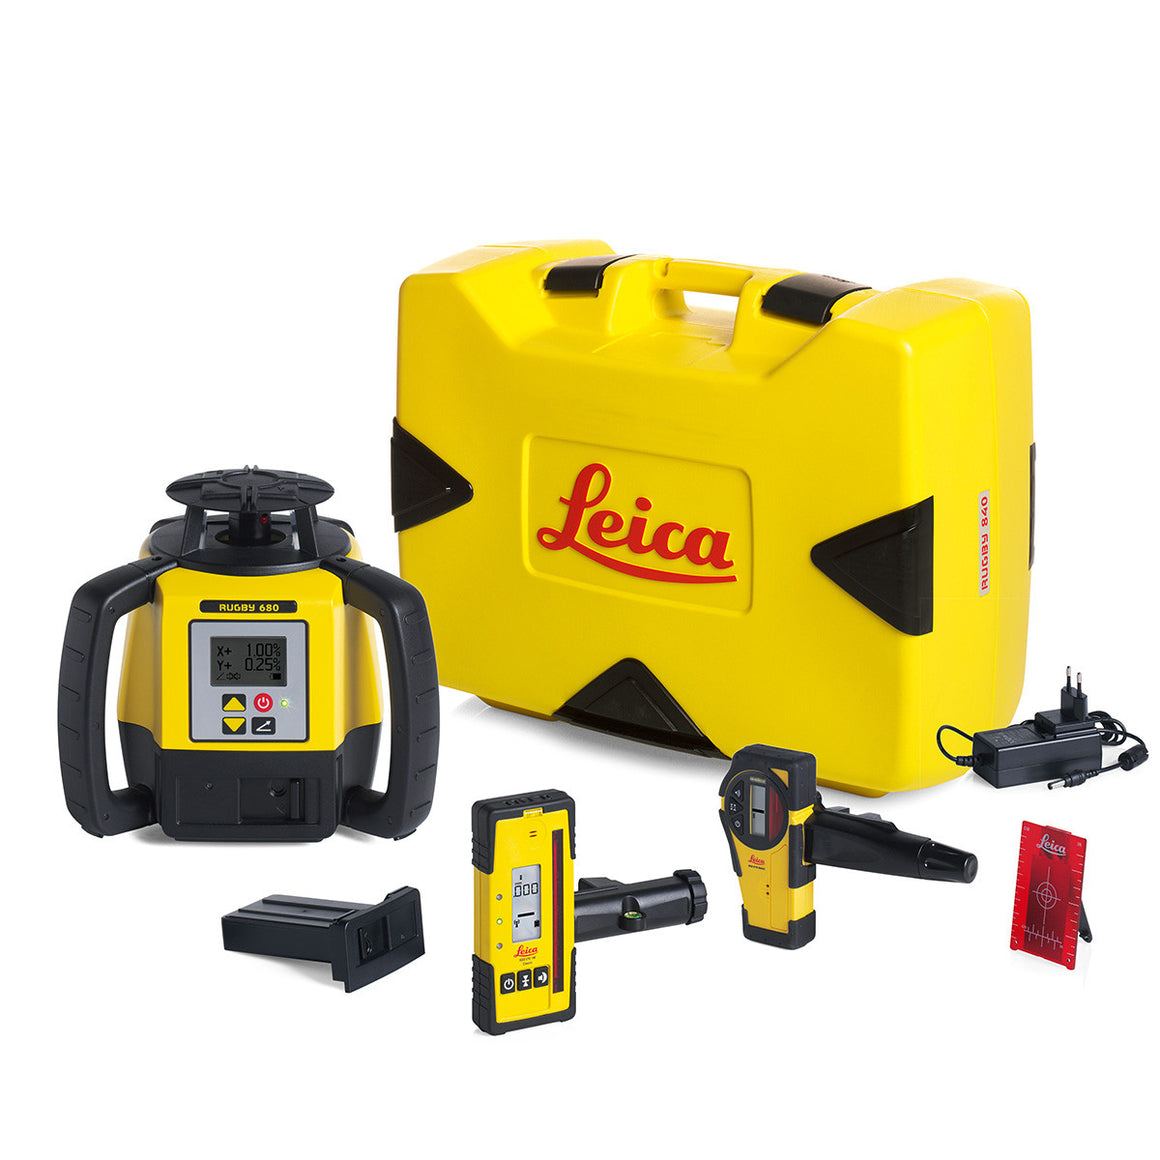 Leica Rugby 680 Single Grade Laser Level